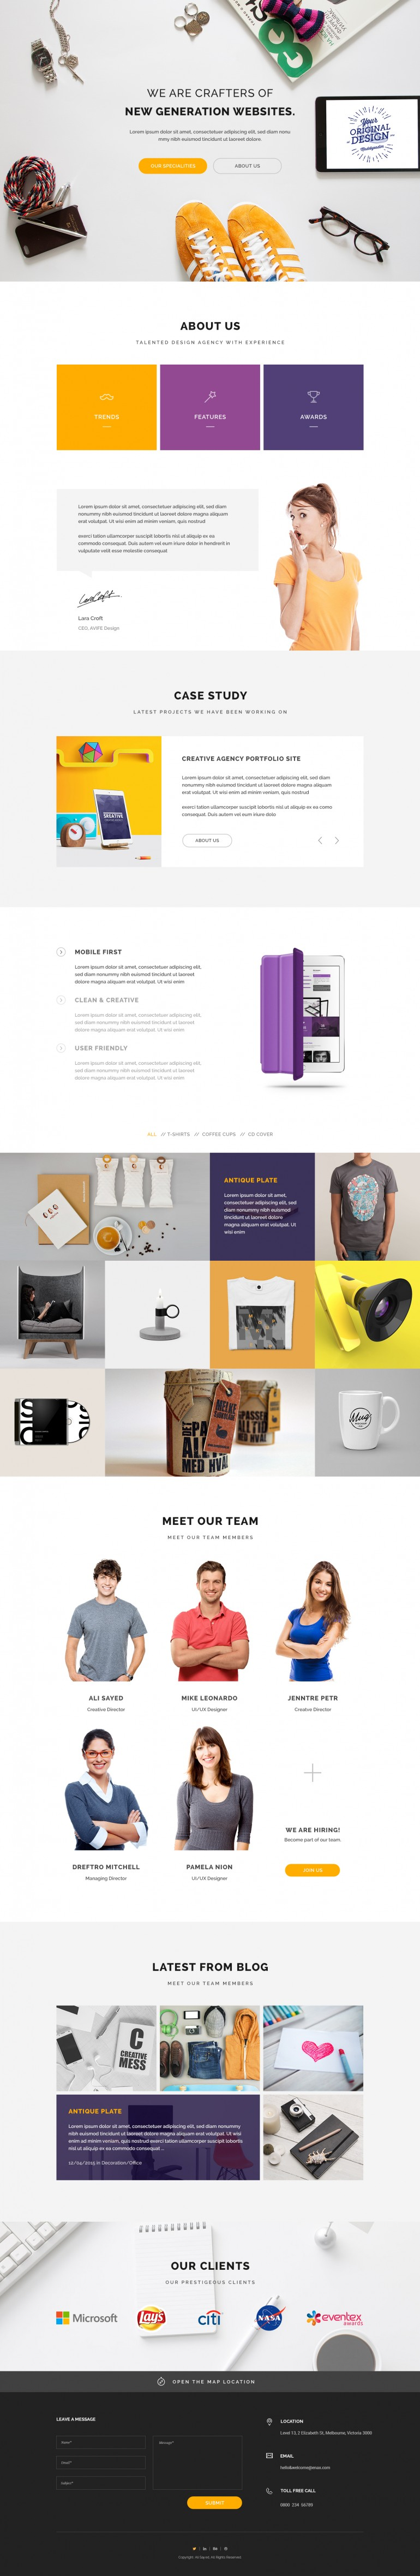 Home Page – Web Design Agency